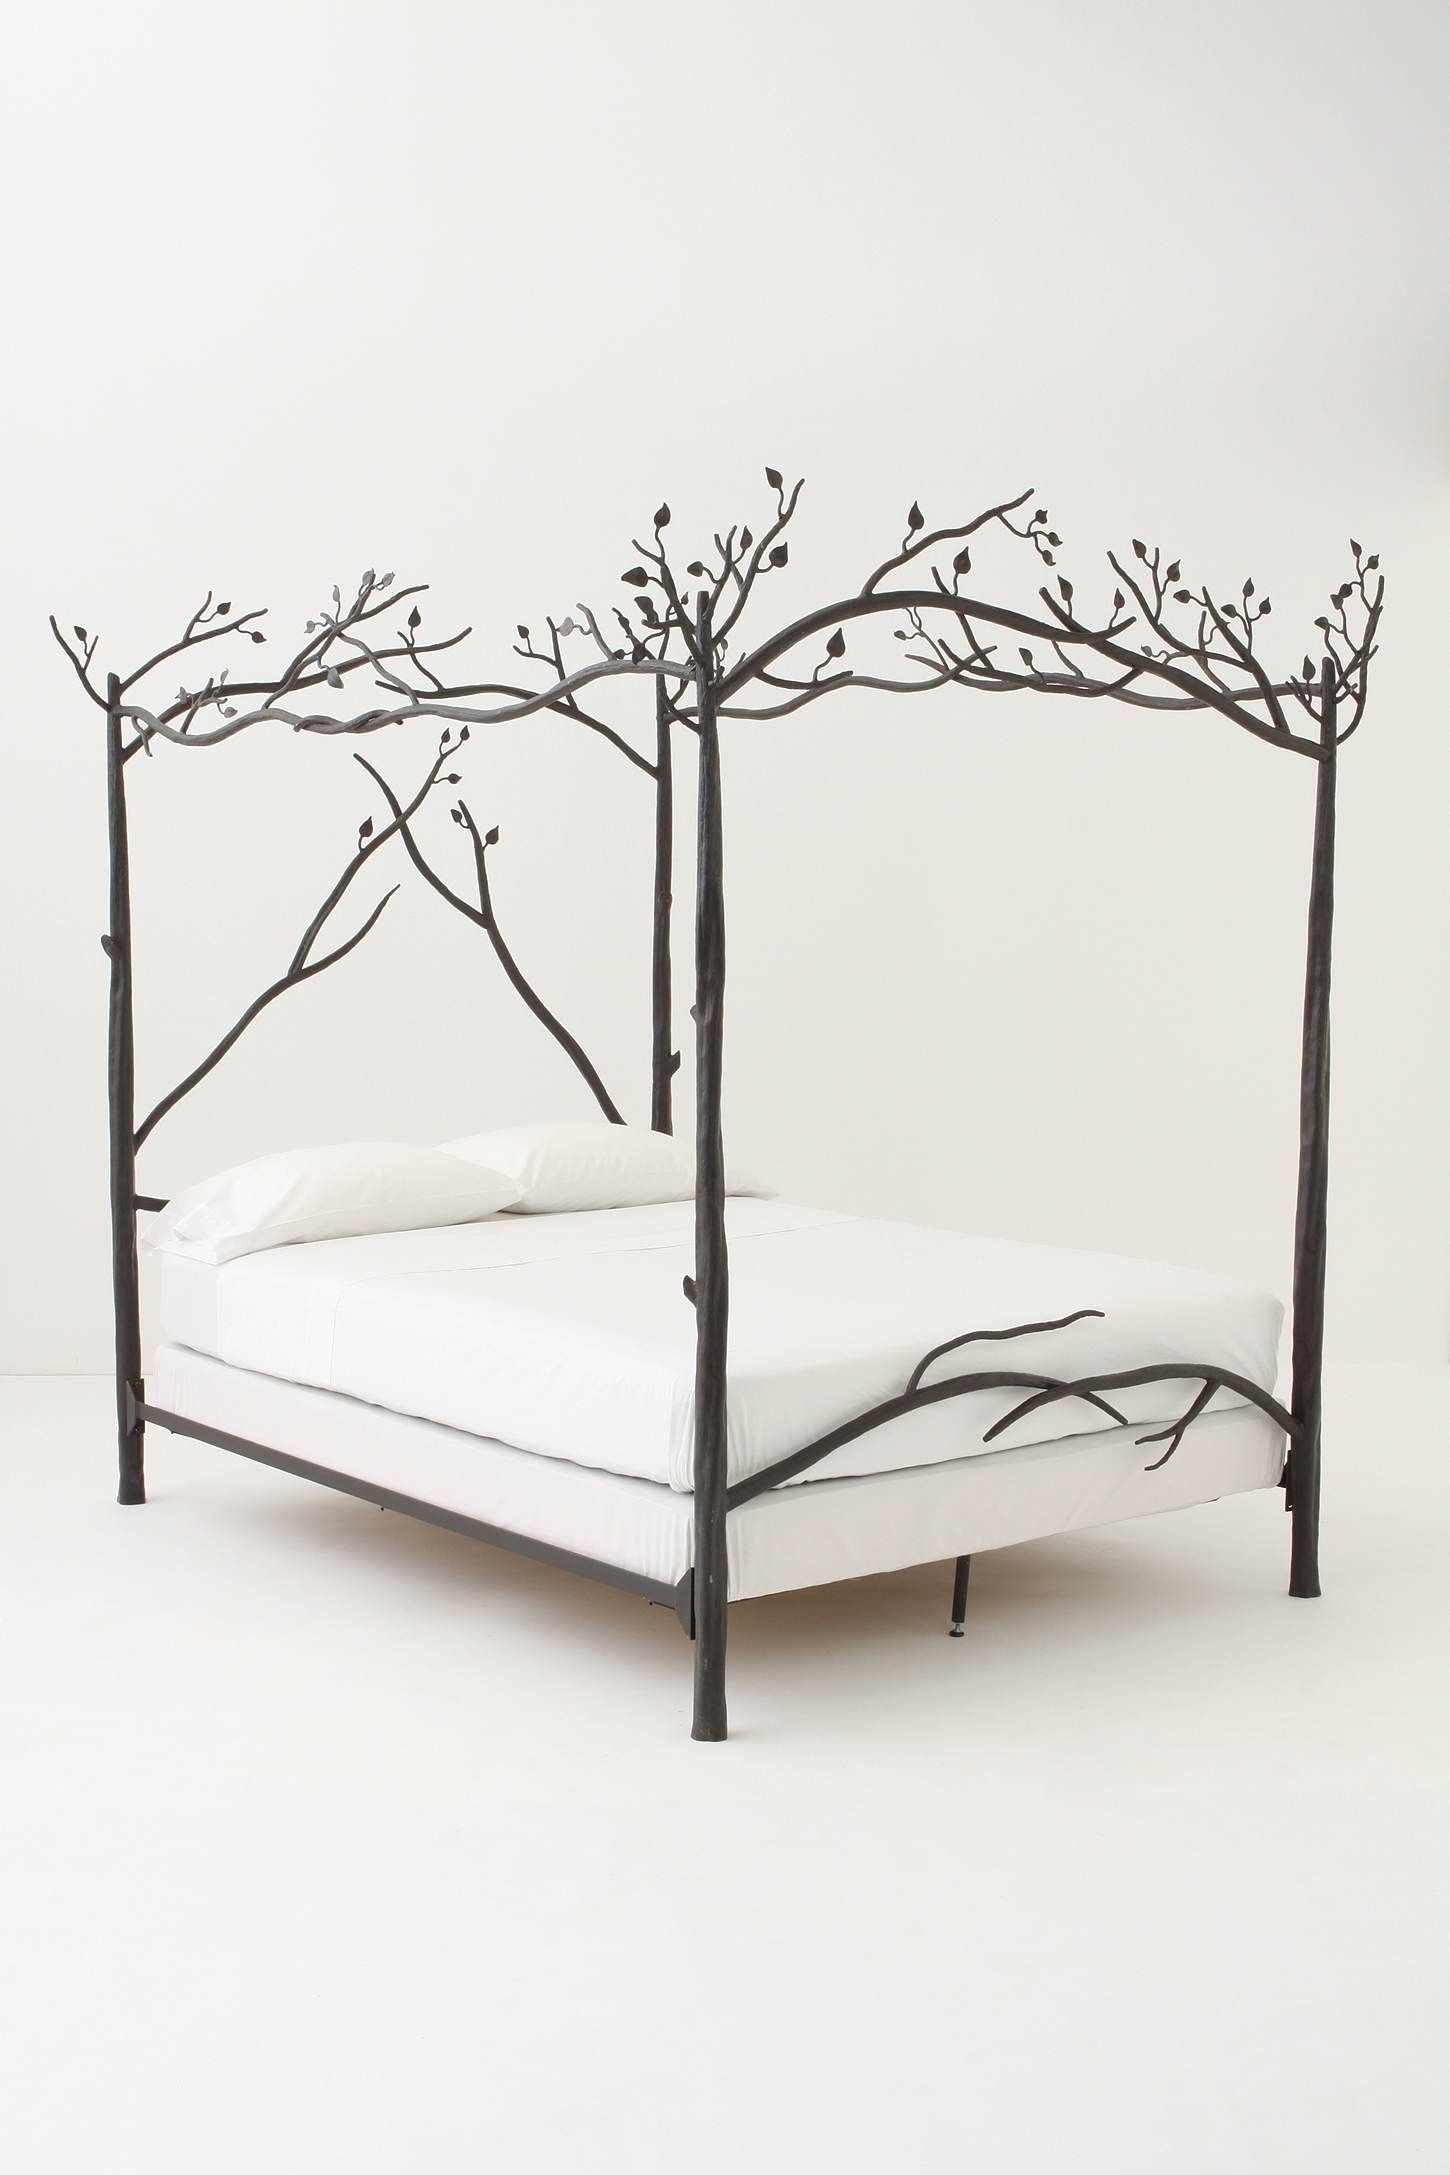 Hanging bed anthropologie - Amazing Beds